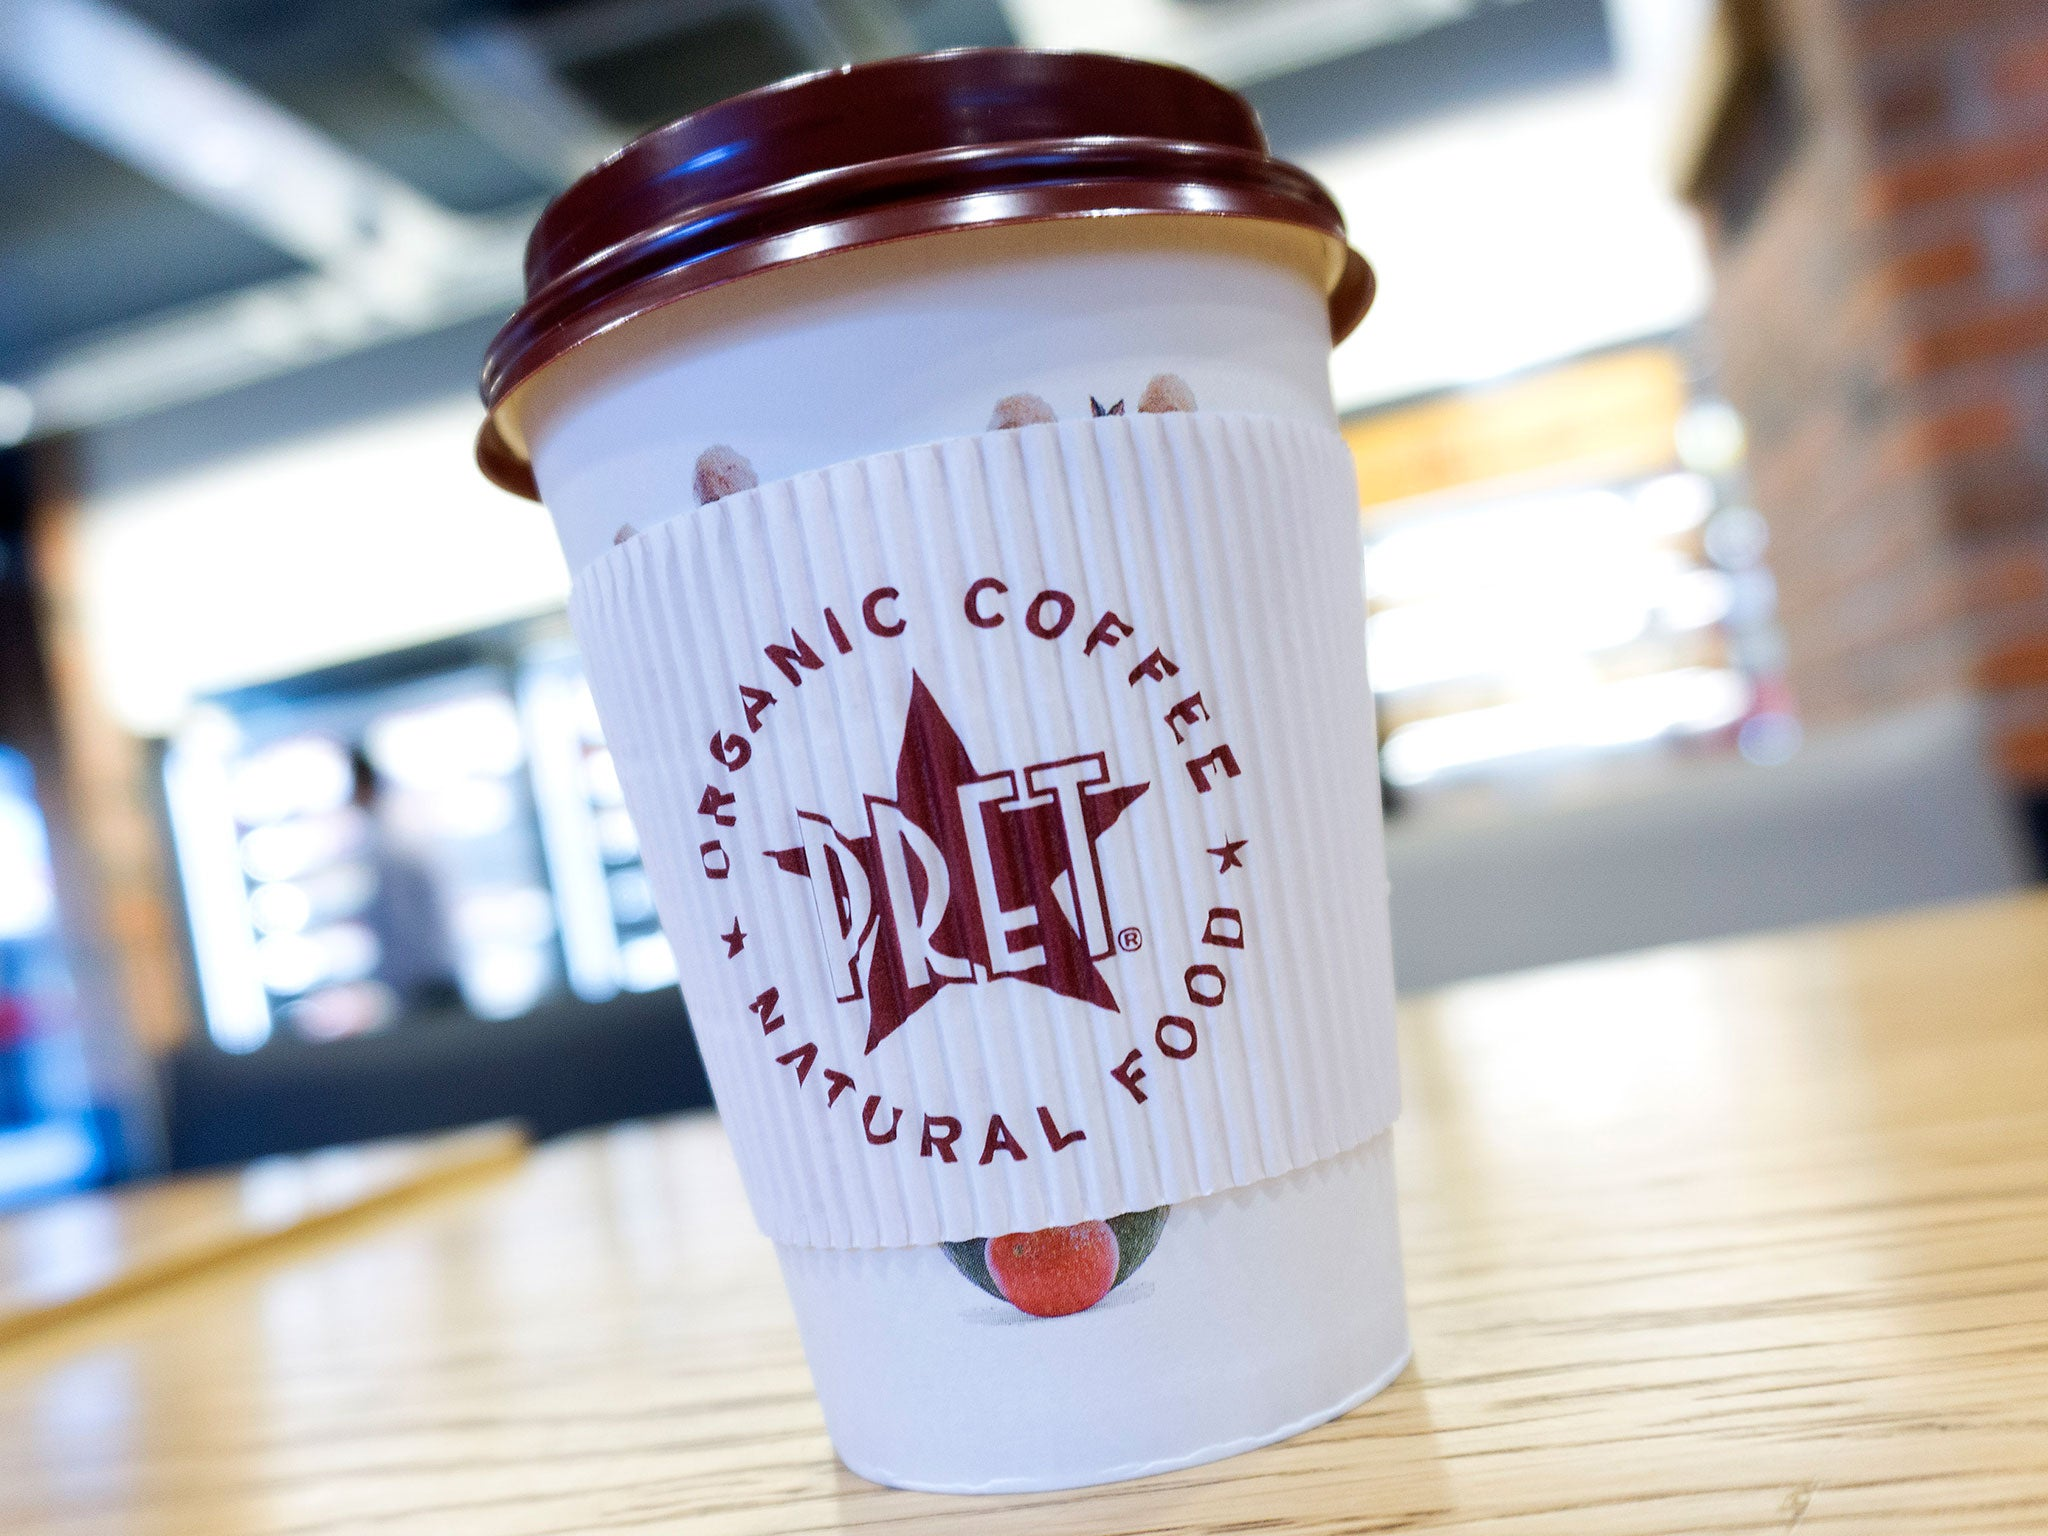 Cafes forced to resort to disposable coffee cups again